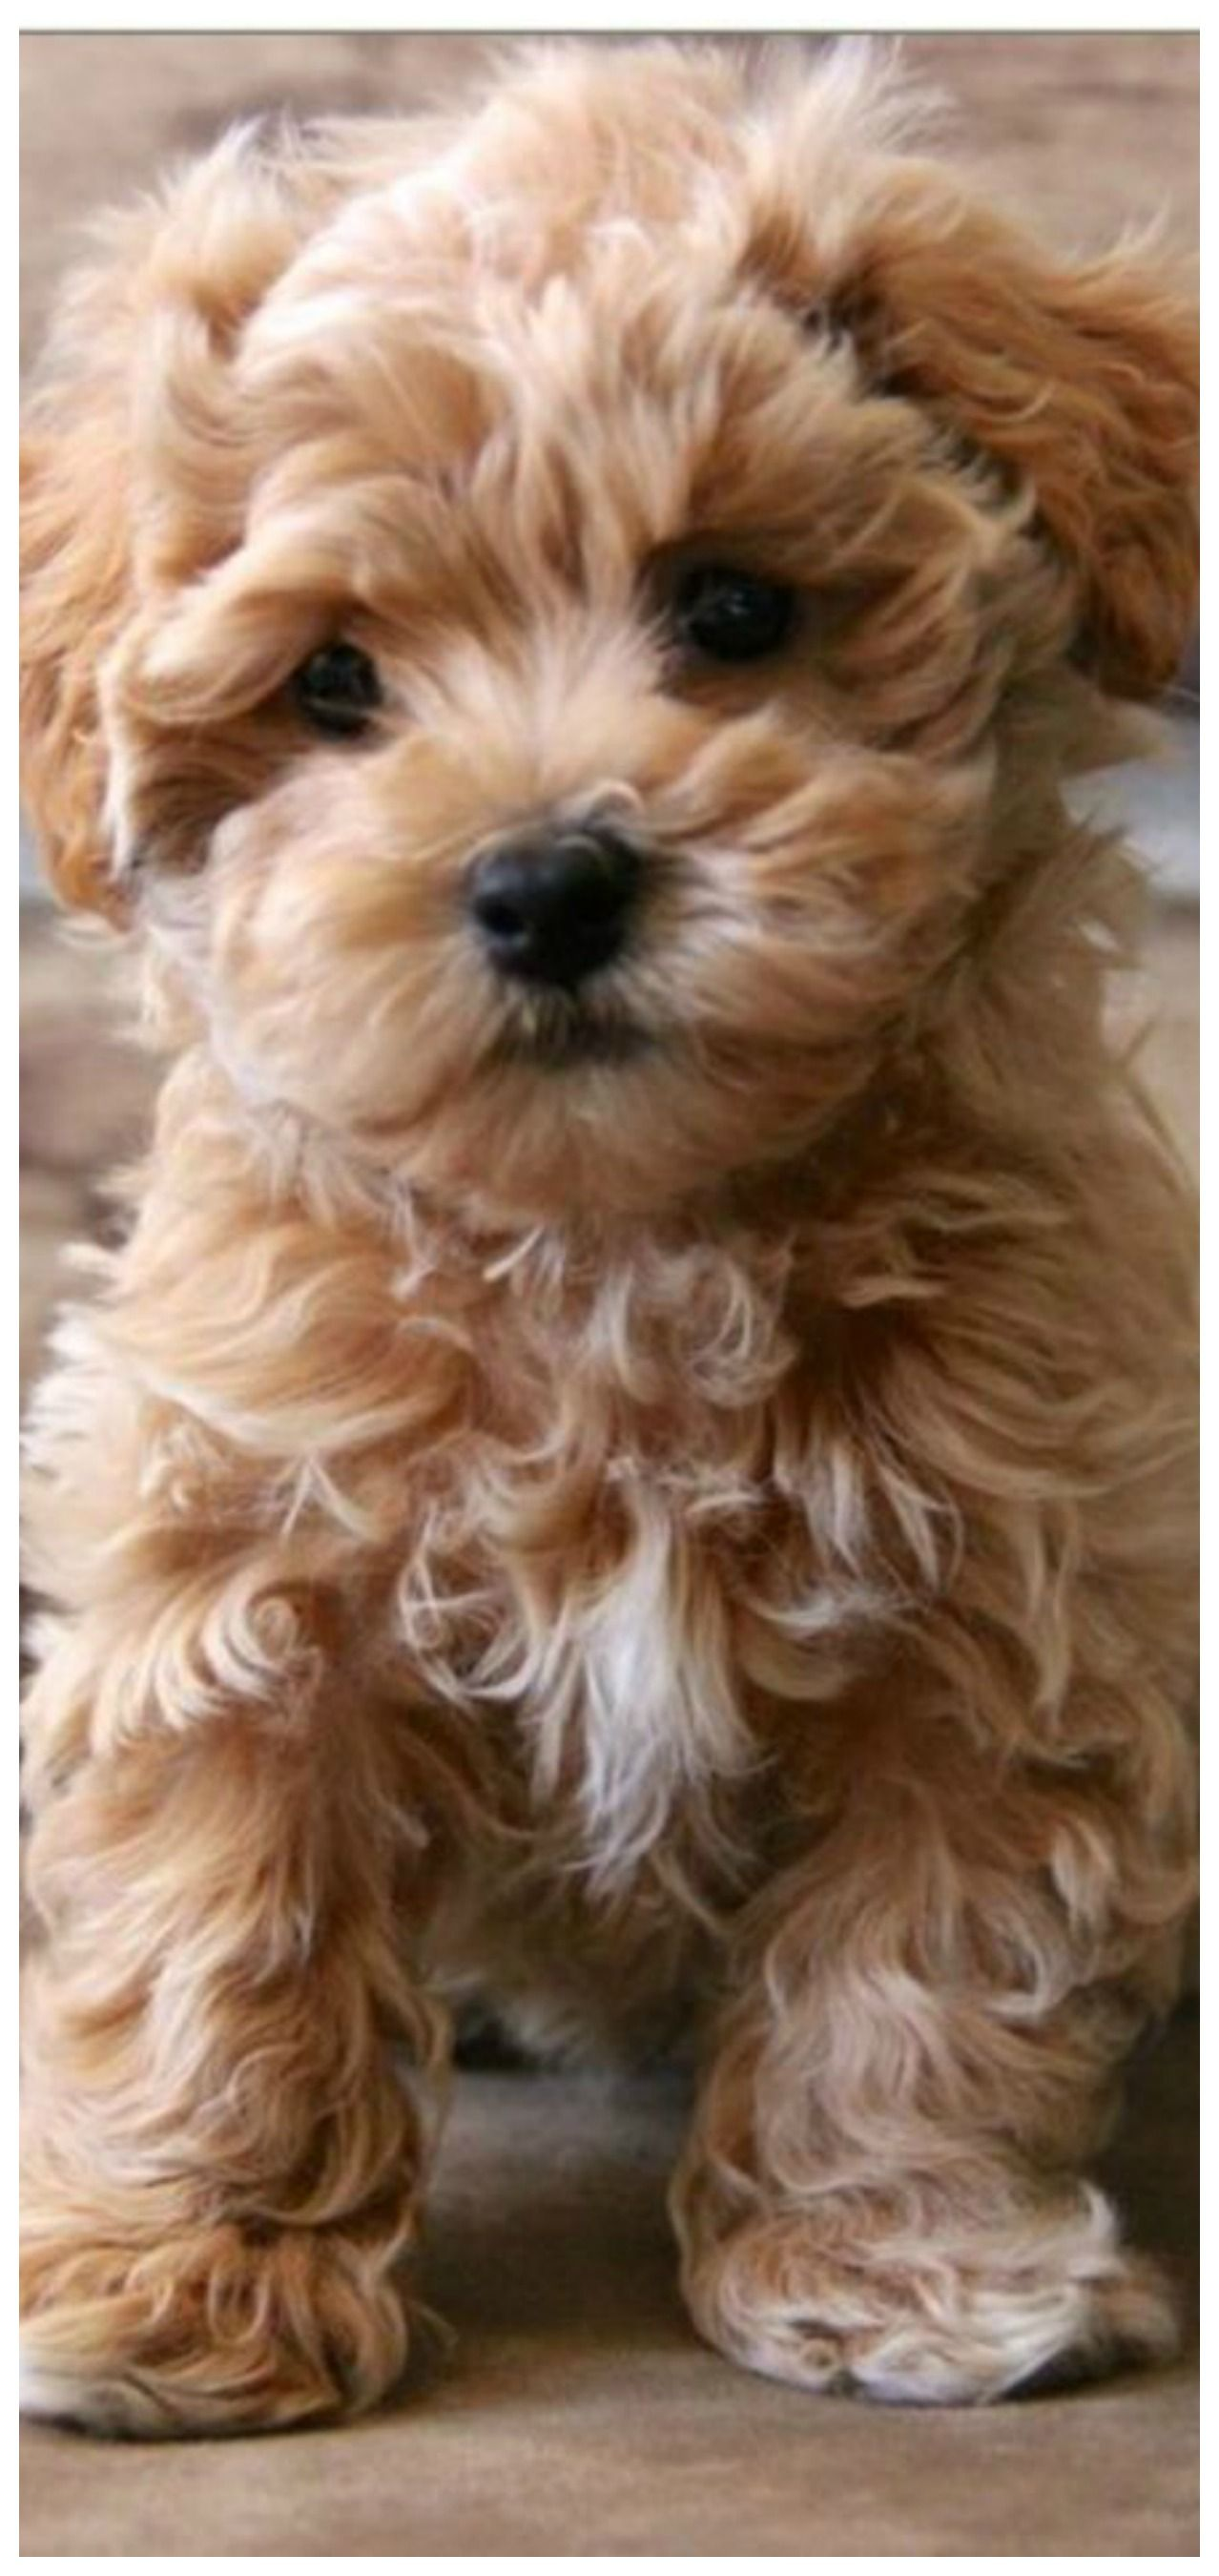 Pin By Tam S Boards On The Pet Store Bear Dog Breed Teddy